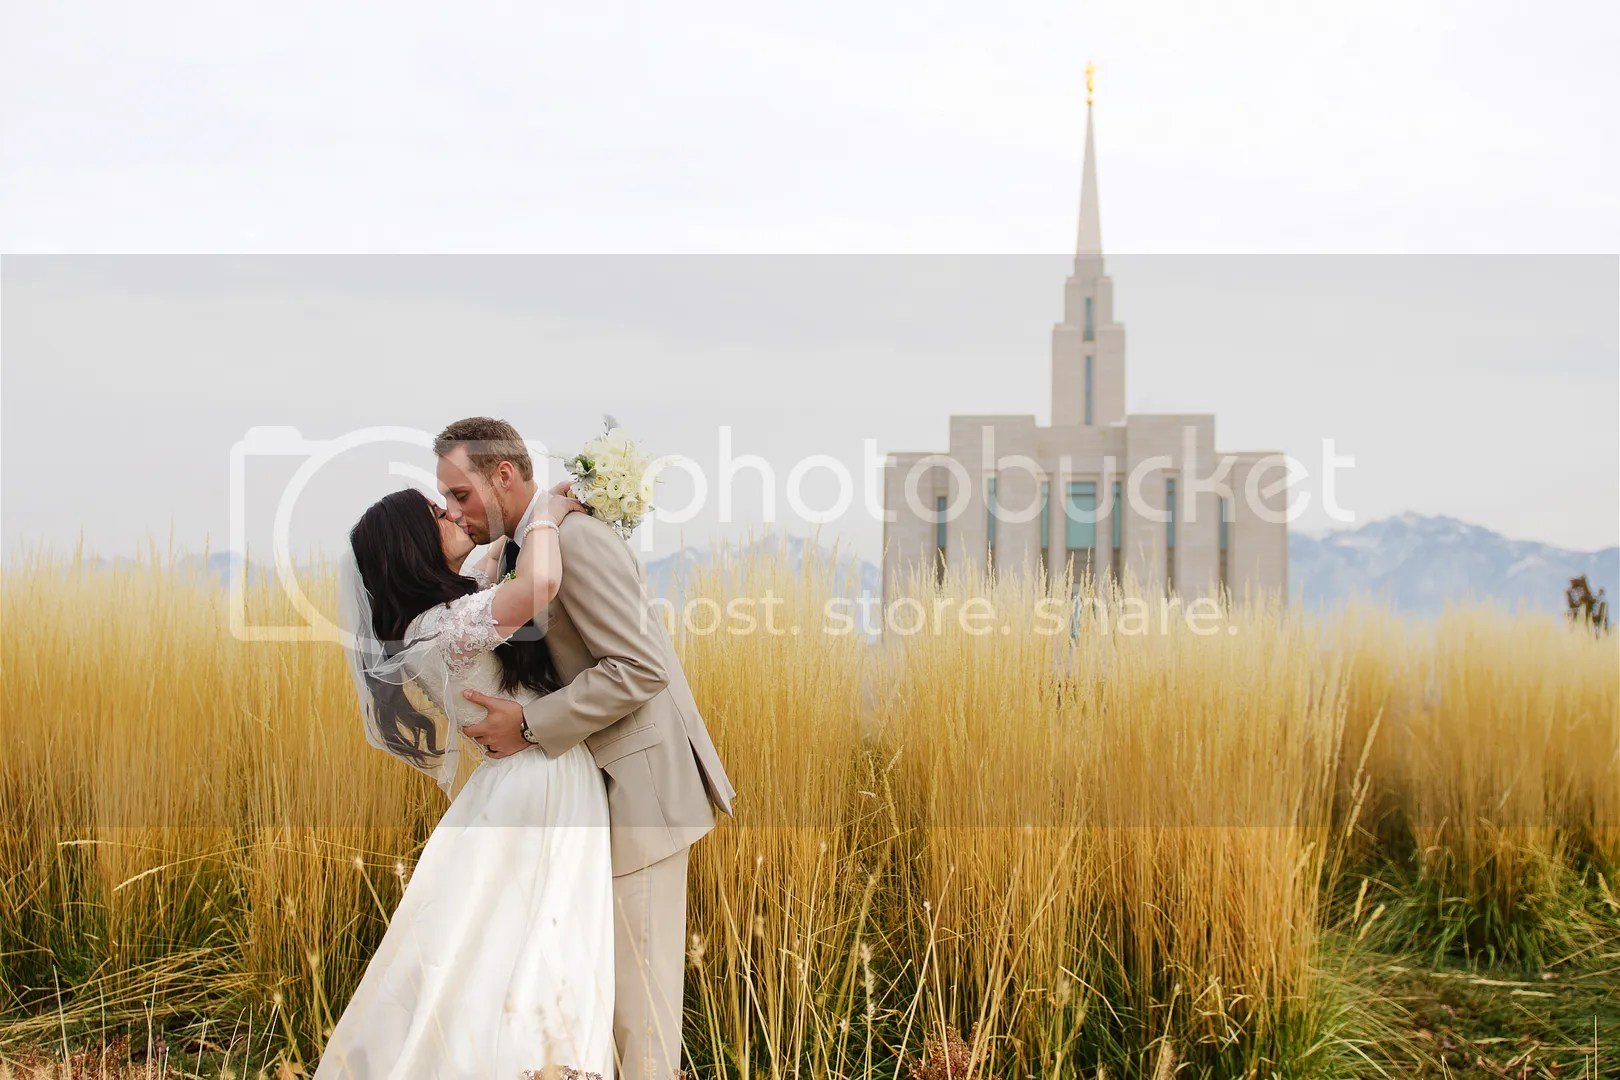 photo QandLWedding2_KaraSimmons_8_zpsavevud6p.jpg